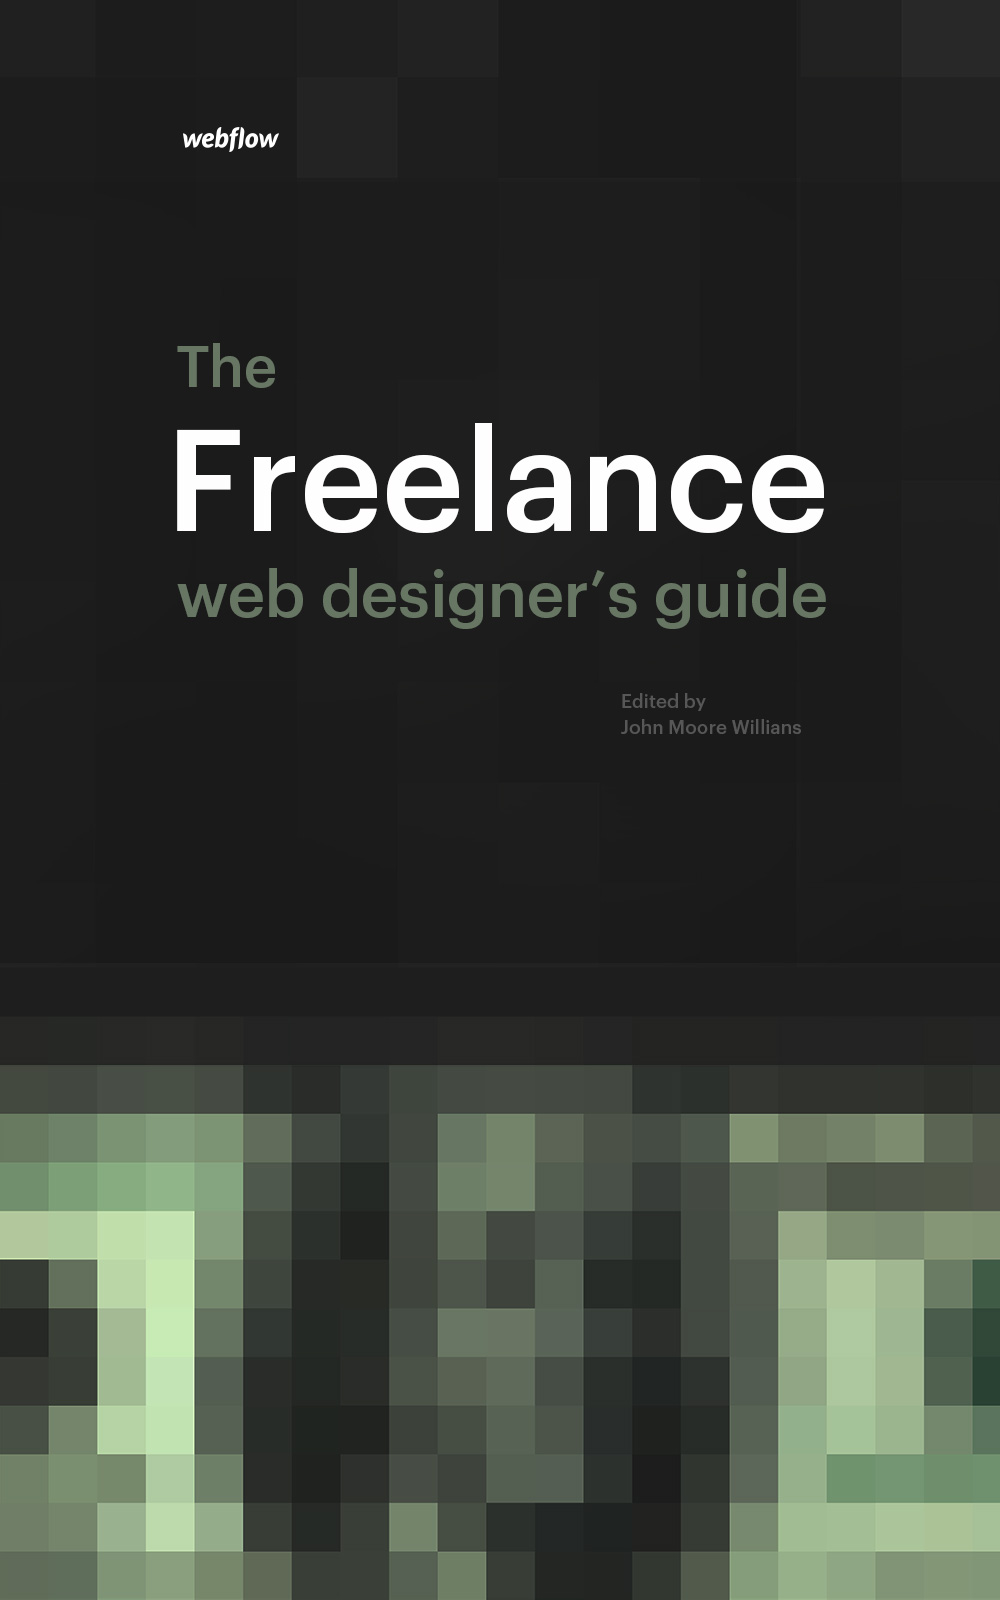 The Freelance Web Designer S Guide A Free Ebook From Webflow